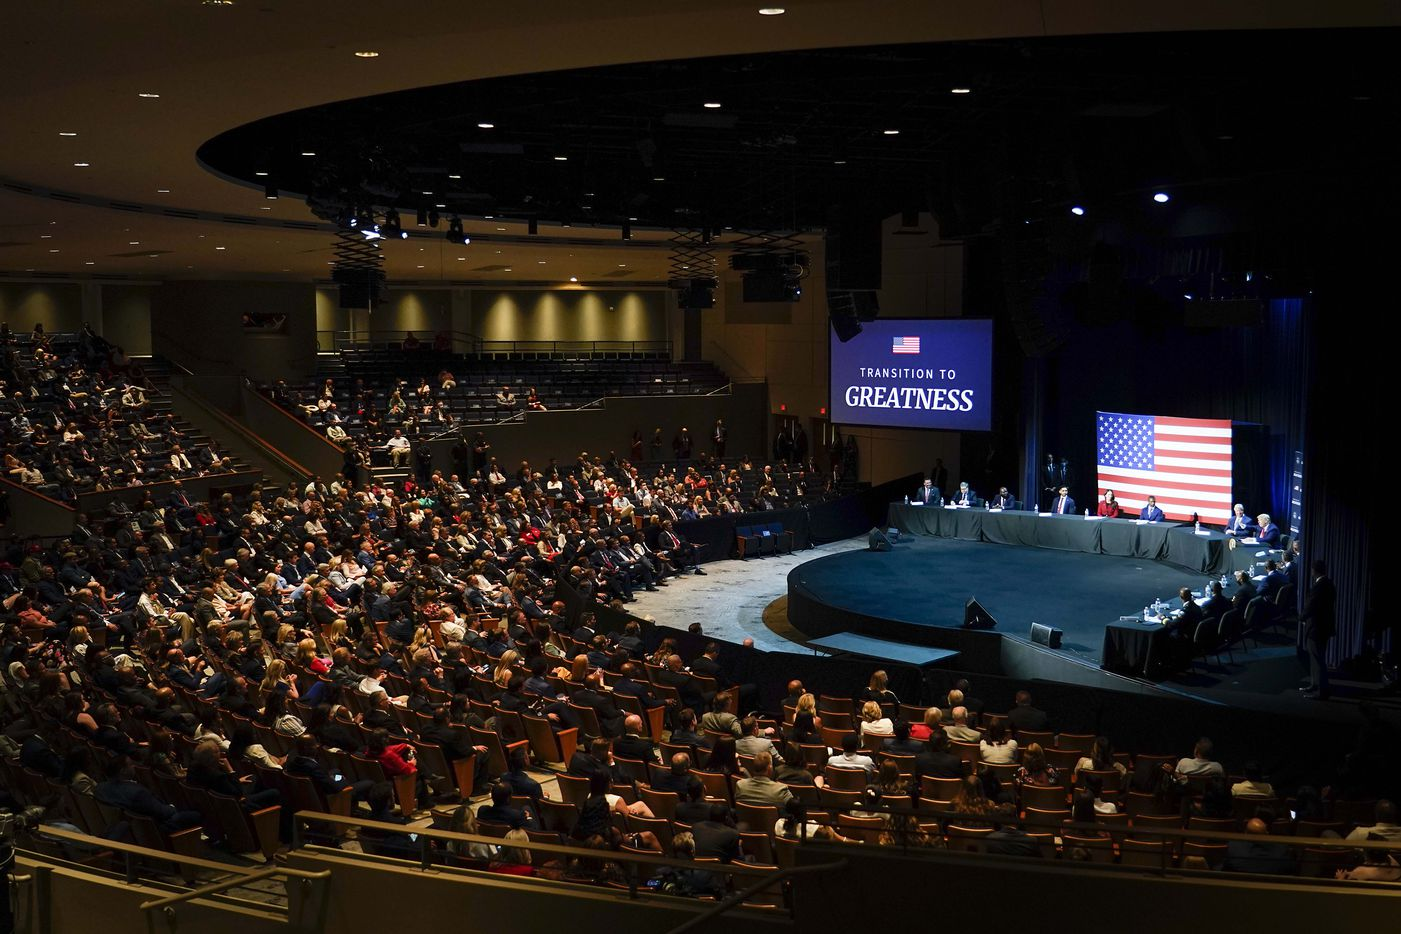 Most seats in the main floor seating area were filled with attendees side-by-side, as President Donald Trump speaks during a roundtable conversation about race relations and policing at Gateway Church Dallas Campus on Thursday, June 11, 2020, in Dallas.